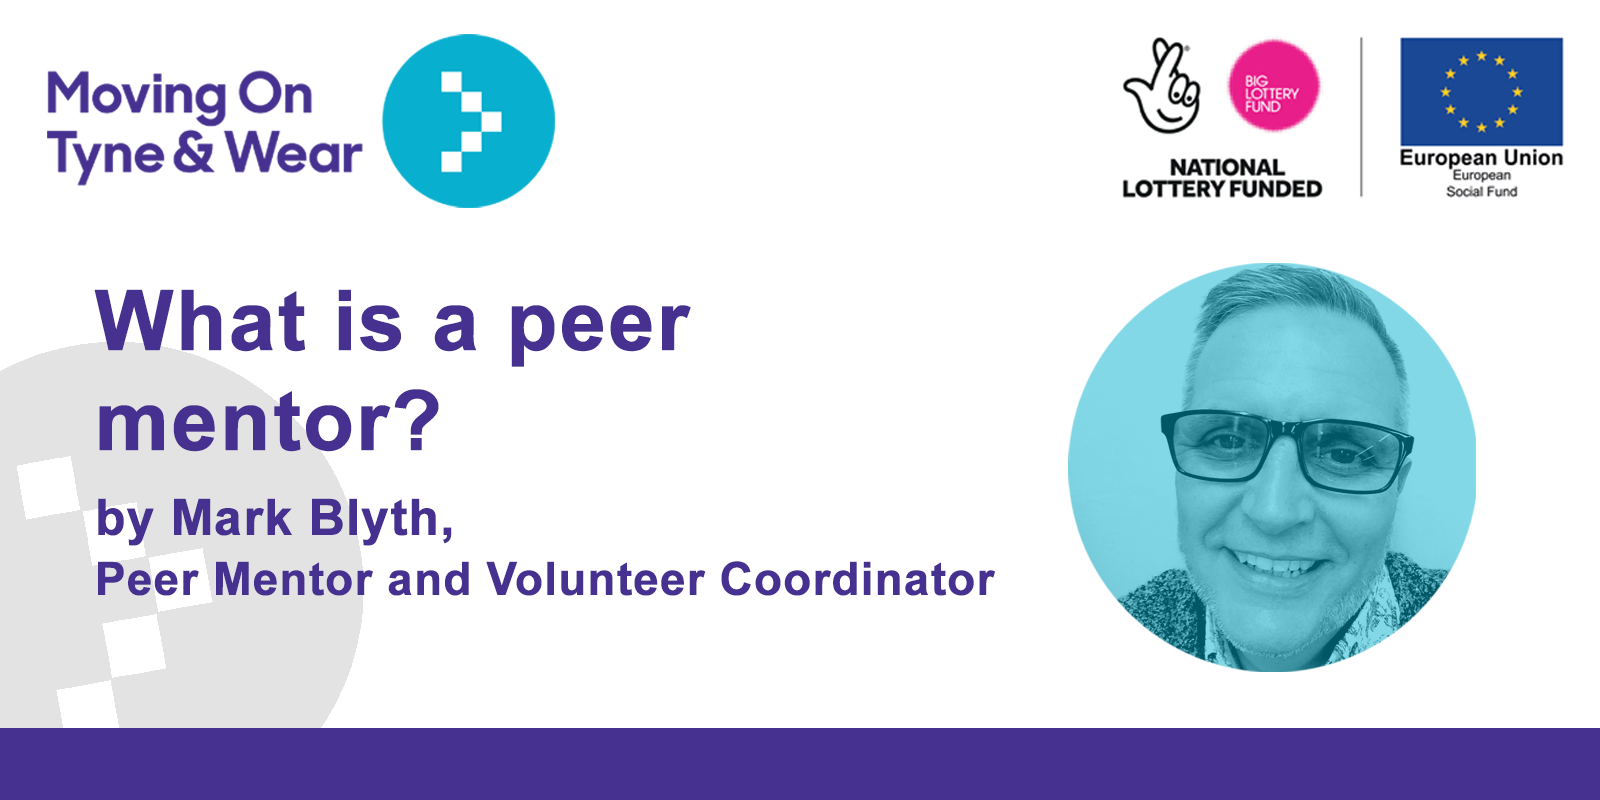 What is peer mentoring? Mark Blyth, Peer Mentor and Volunteer Coordinator